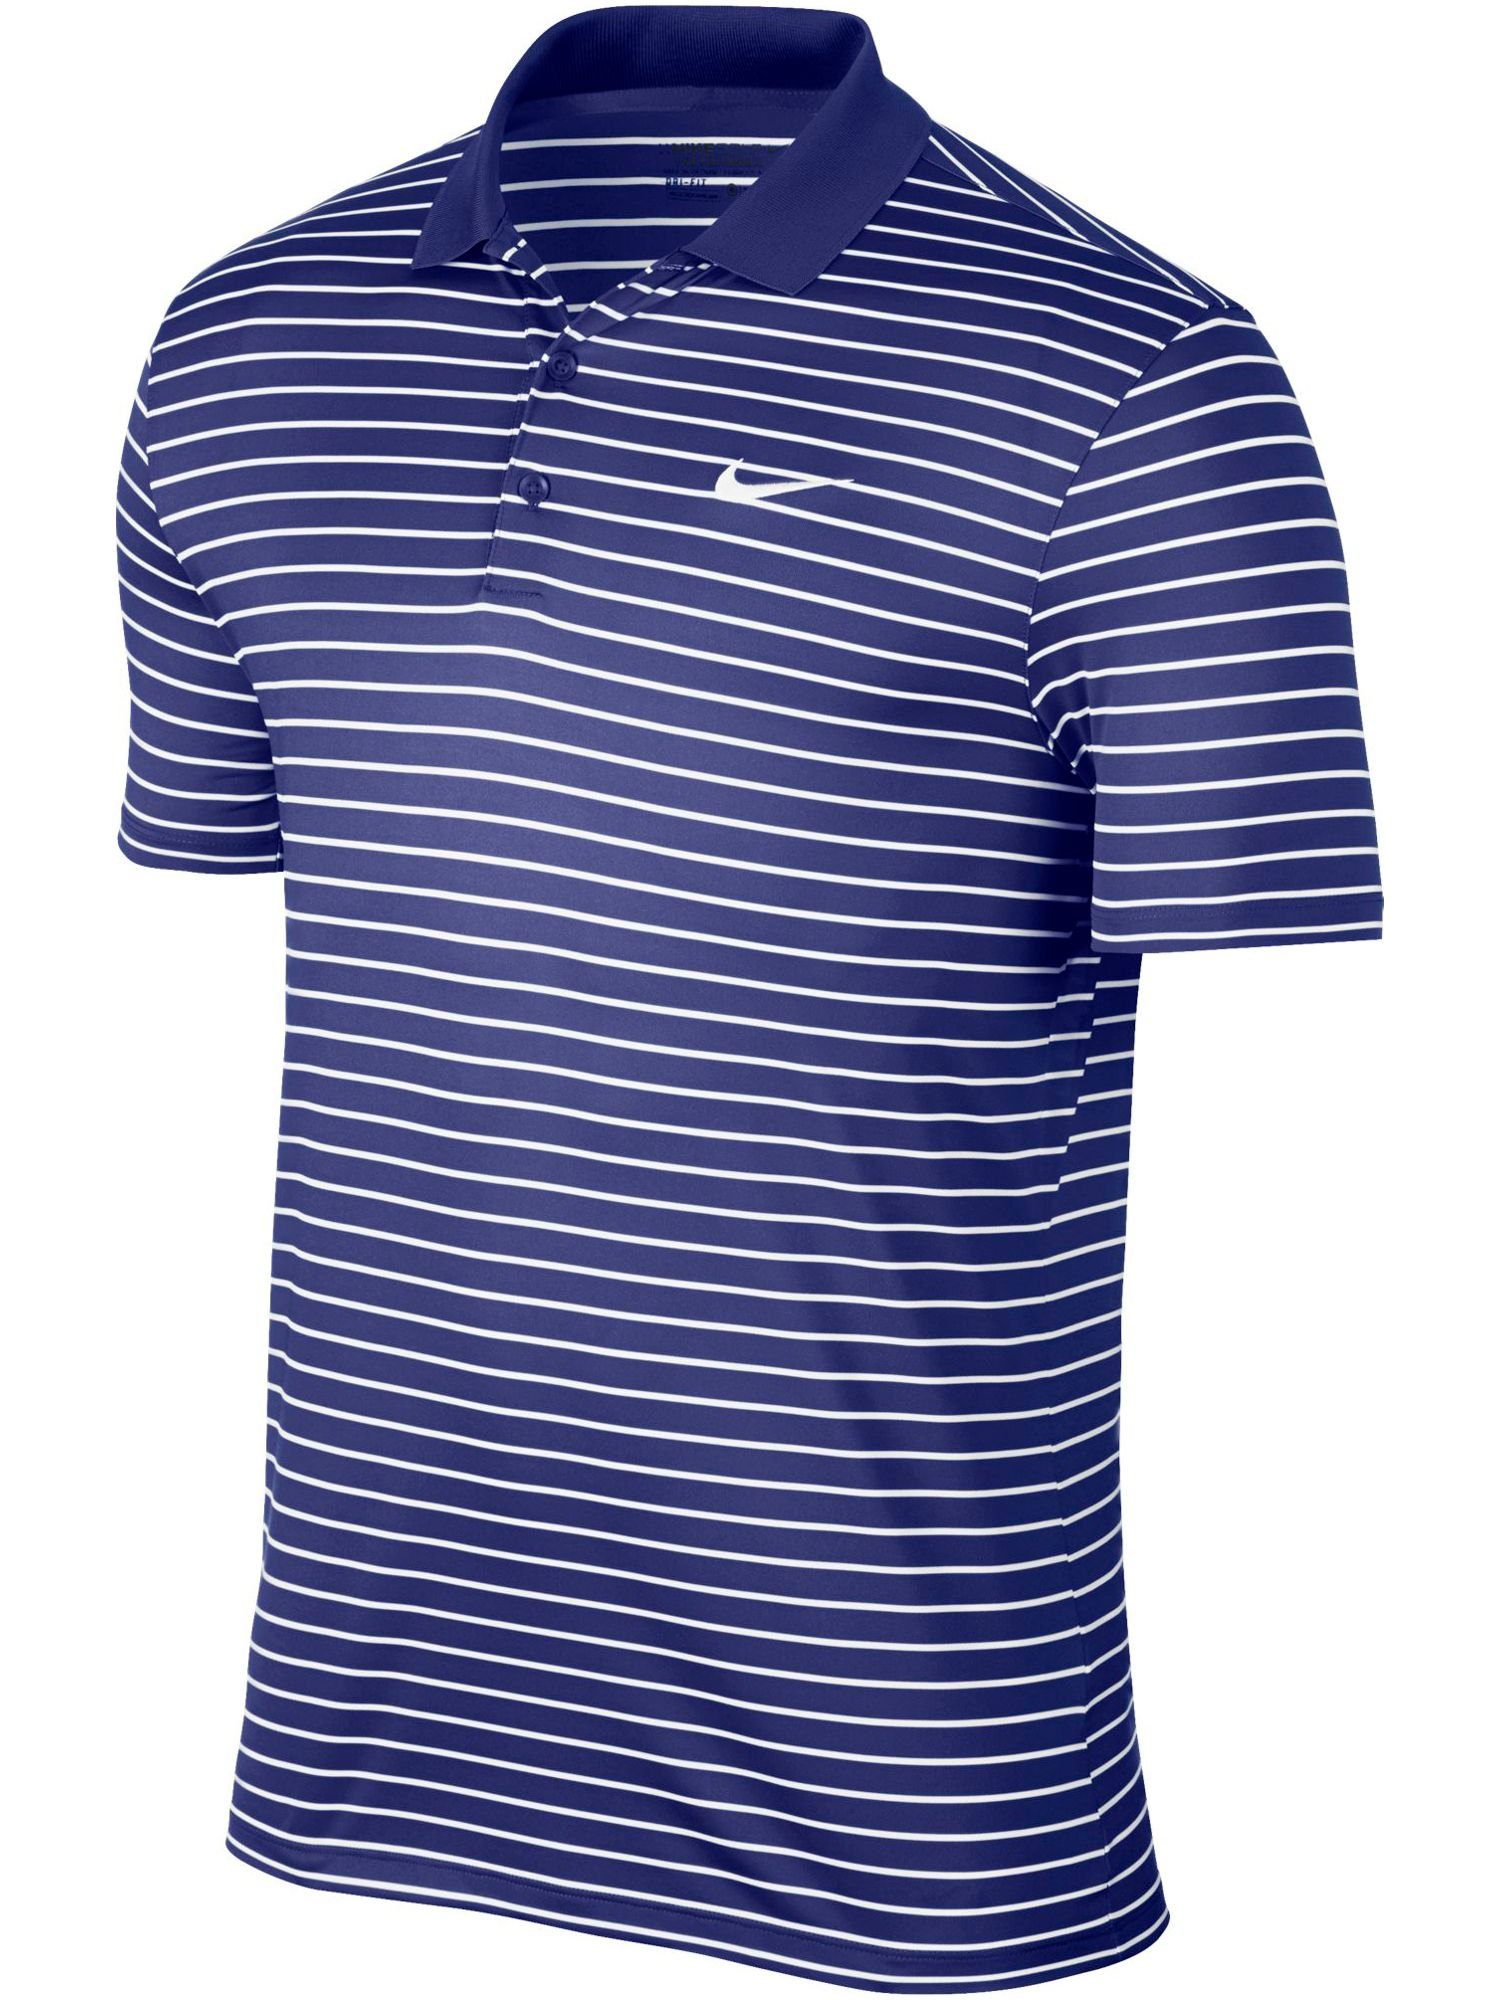 Men's Nike Victory Stripe Polo, Blue